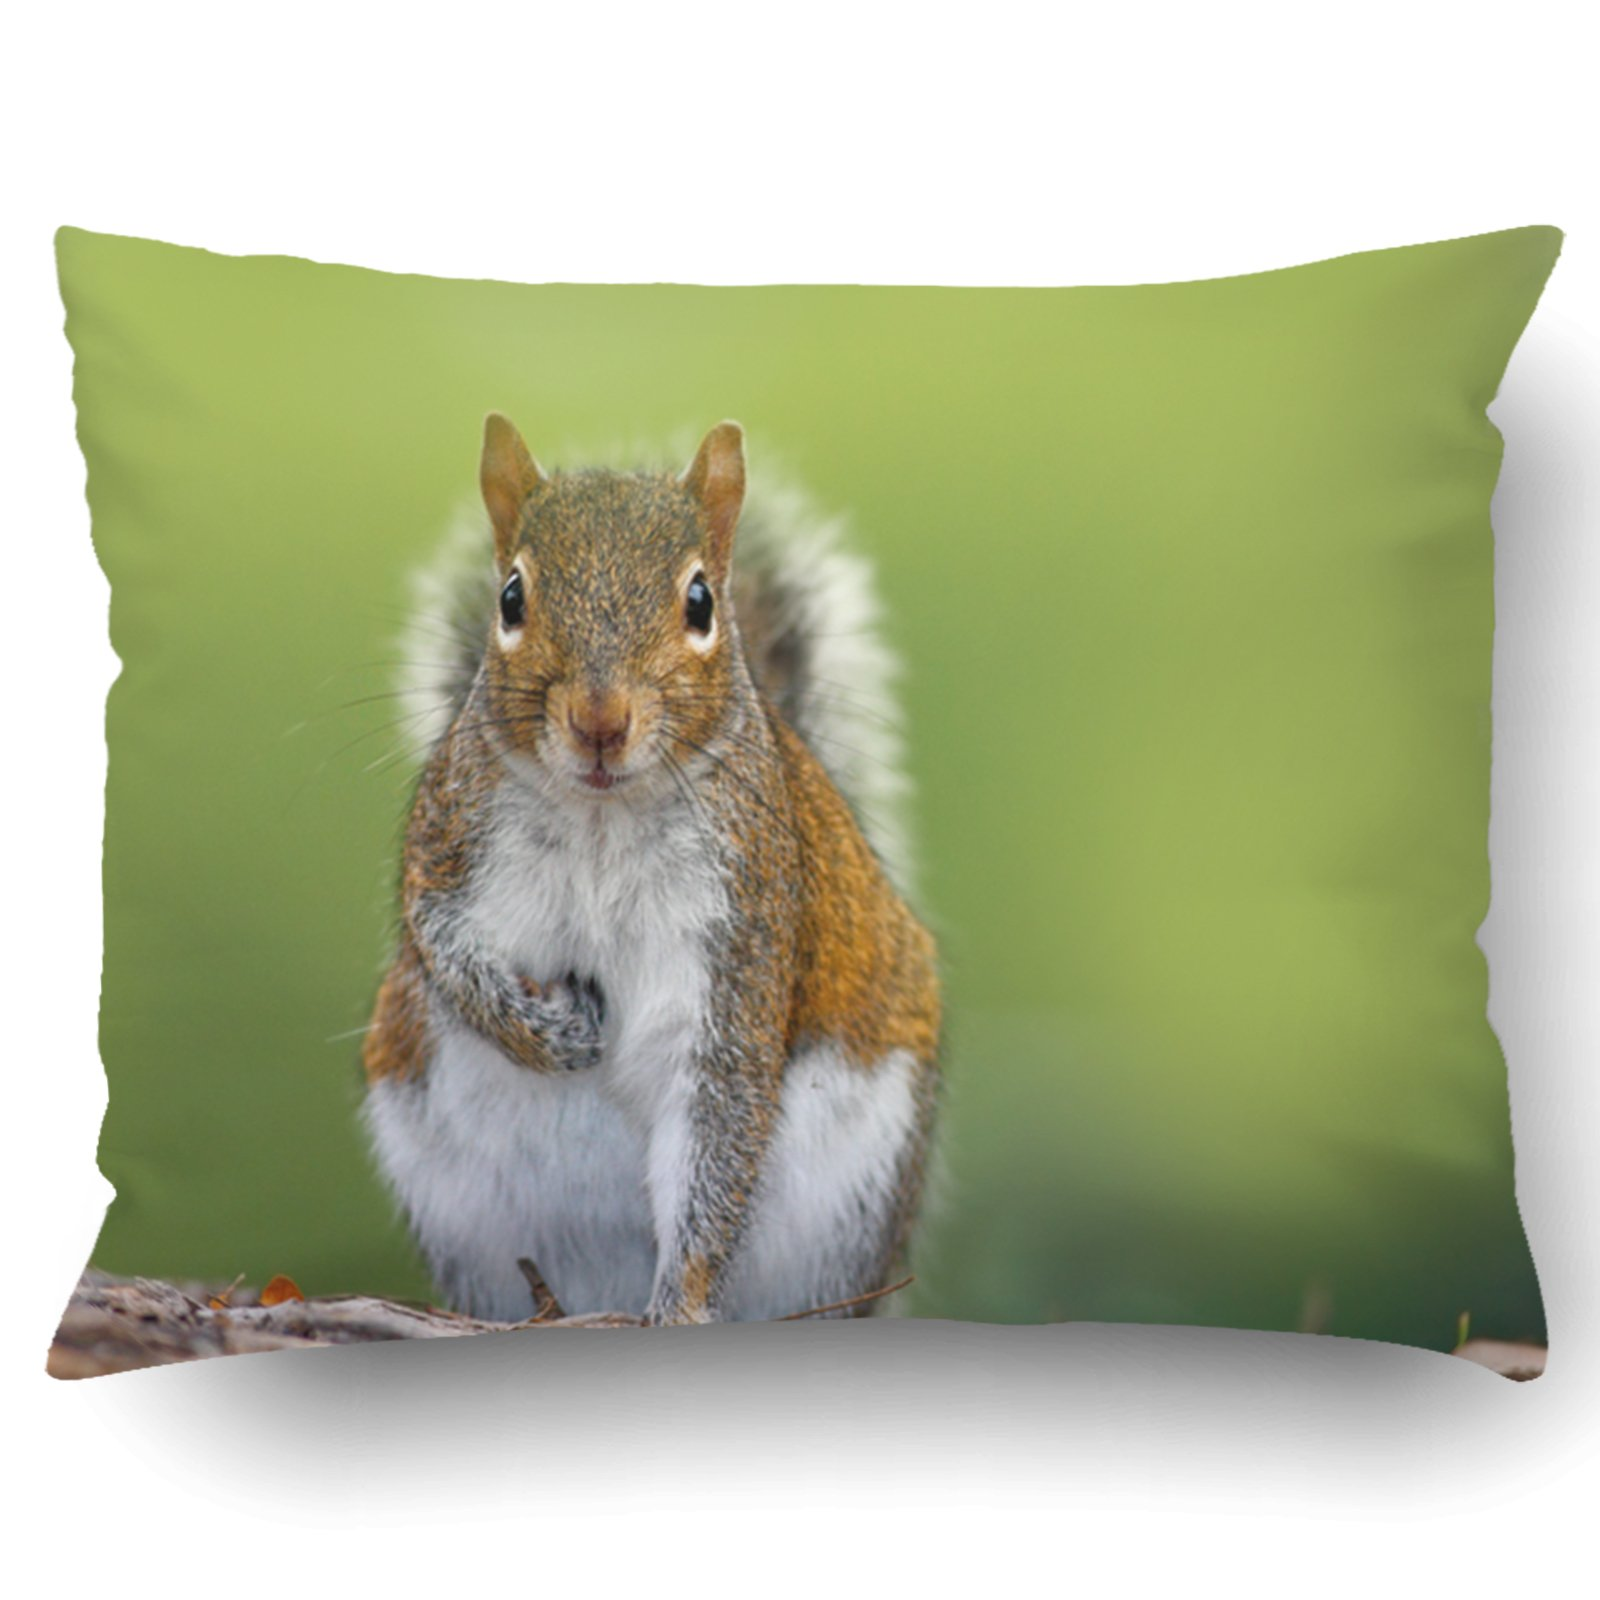 Emvency Pillow Covers Decorative Funny Image From Wild Nature Gray Squirrel Sciurus Carolinensis Cute Animal Bulk With Zippered 20x26 Standard Pillow Case For Home Bed Couch Sofa Car One Sided